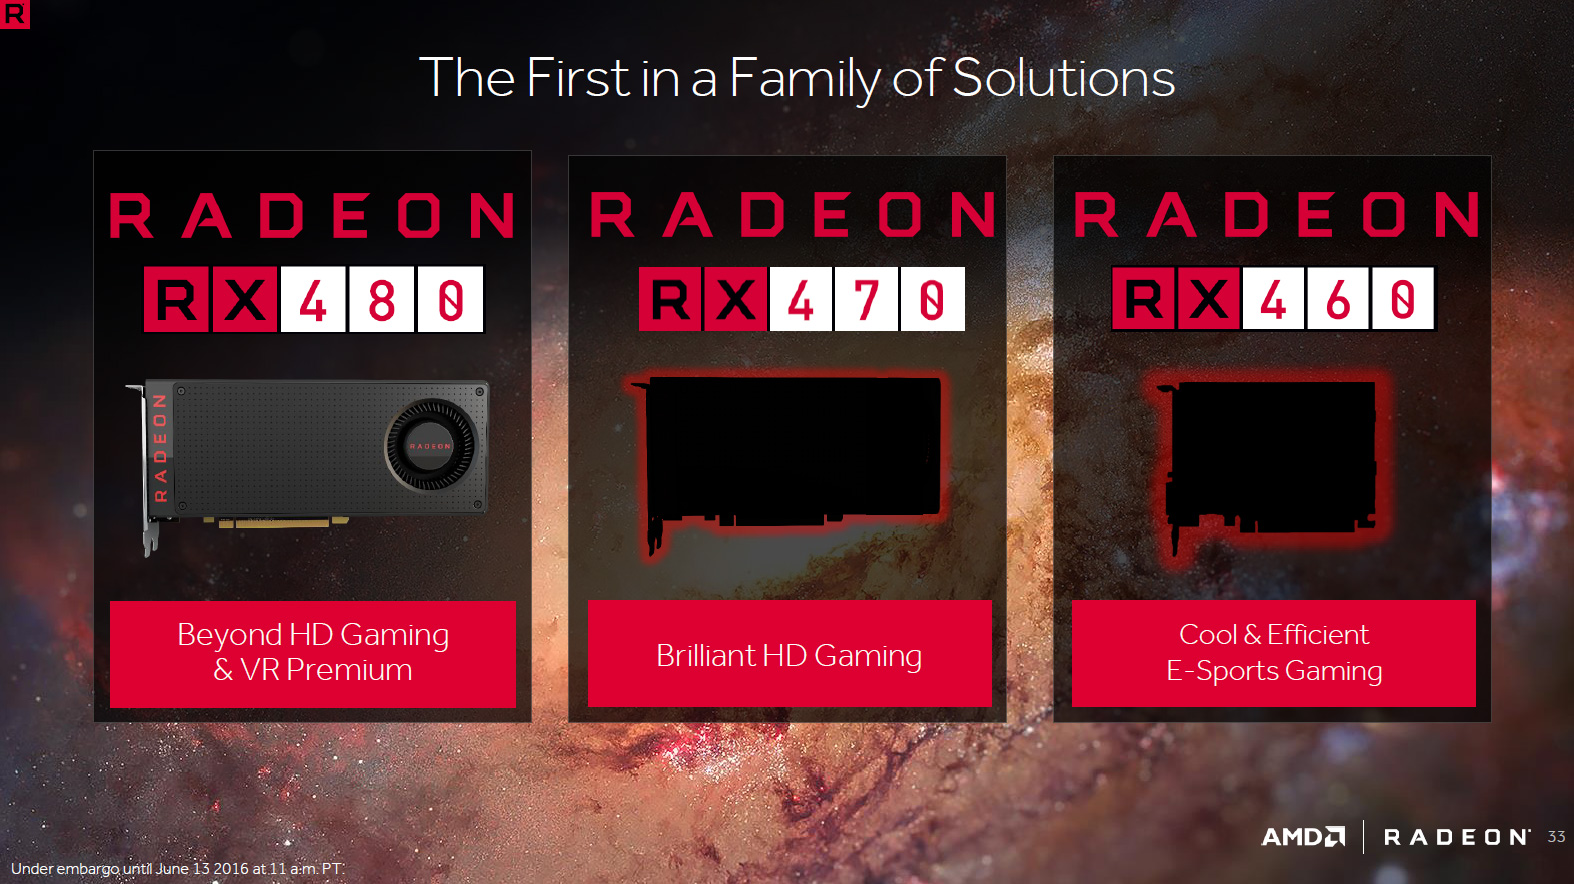 Photo of the upcoming launch: A look at the performance of the Radeon RX 460